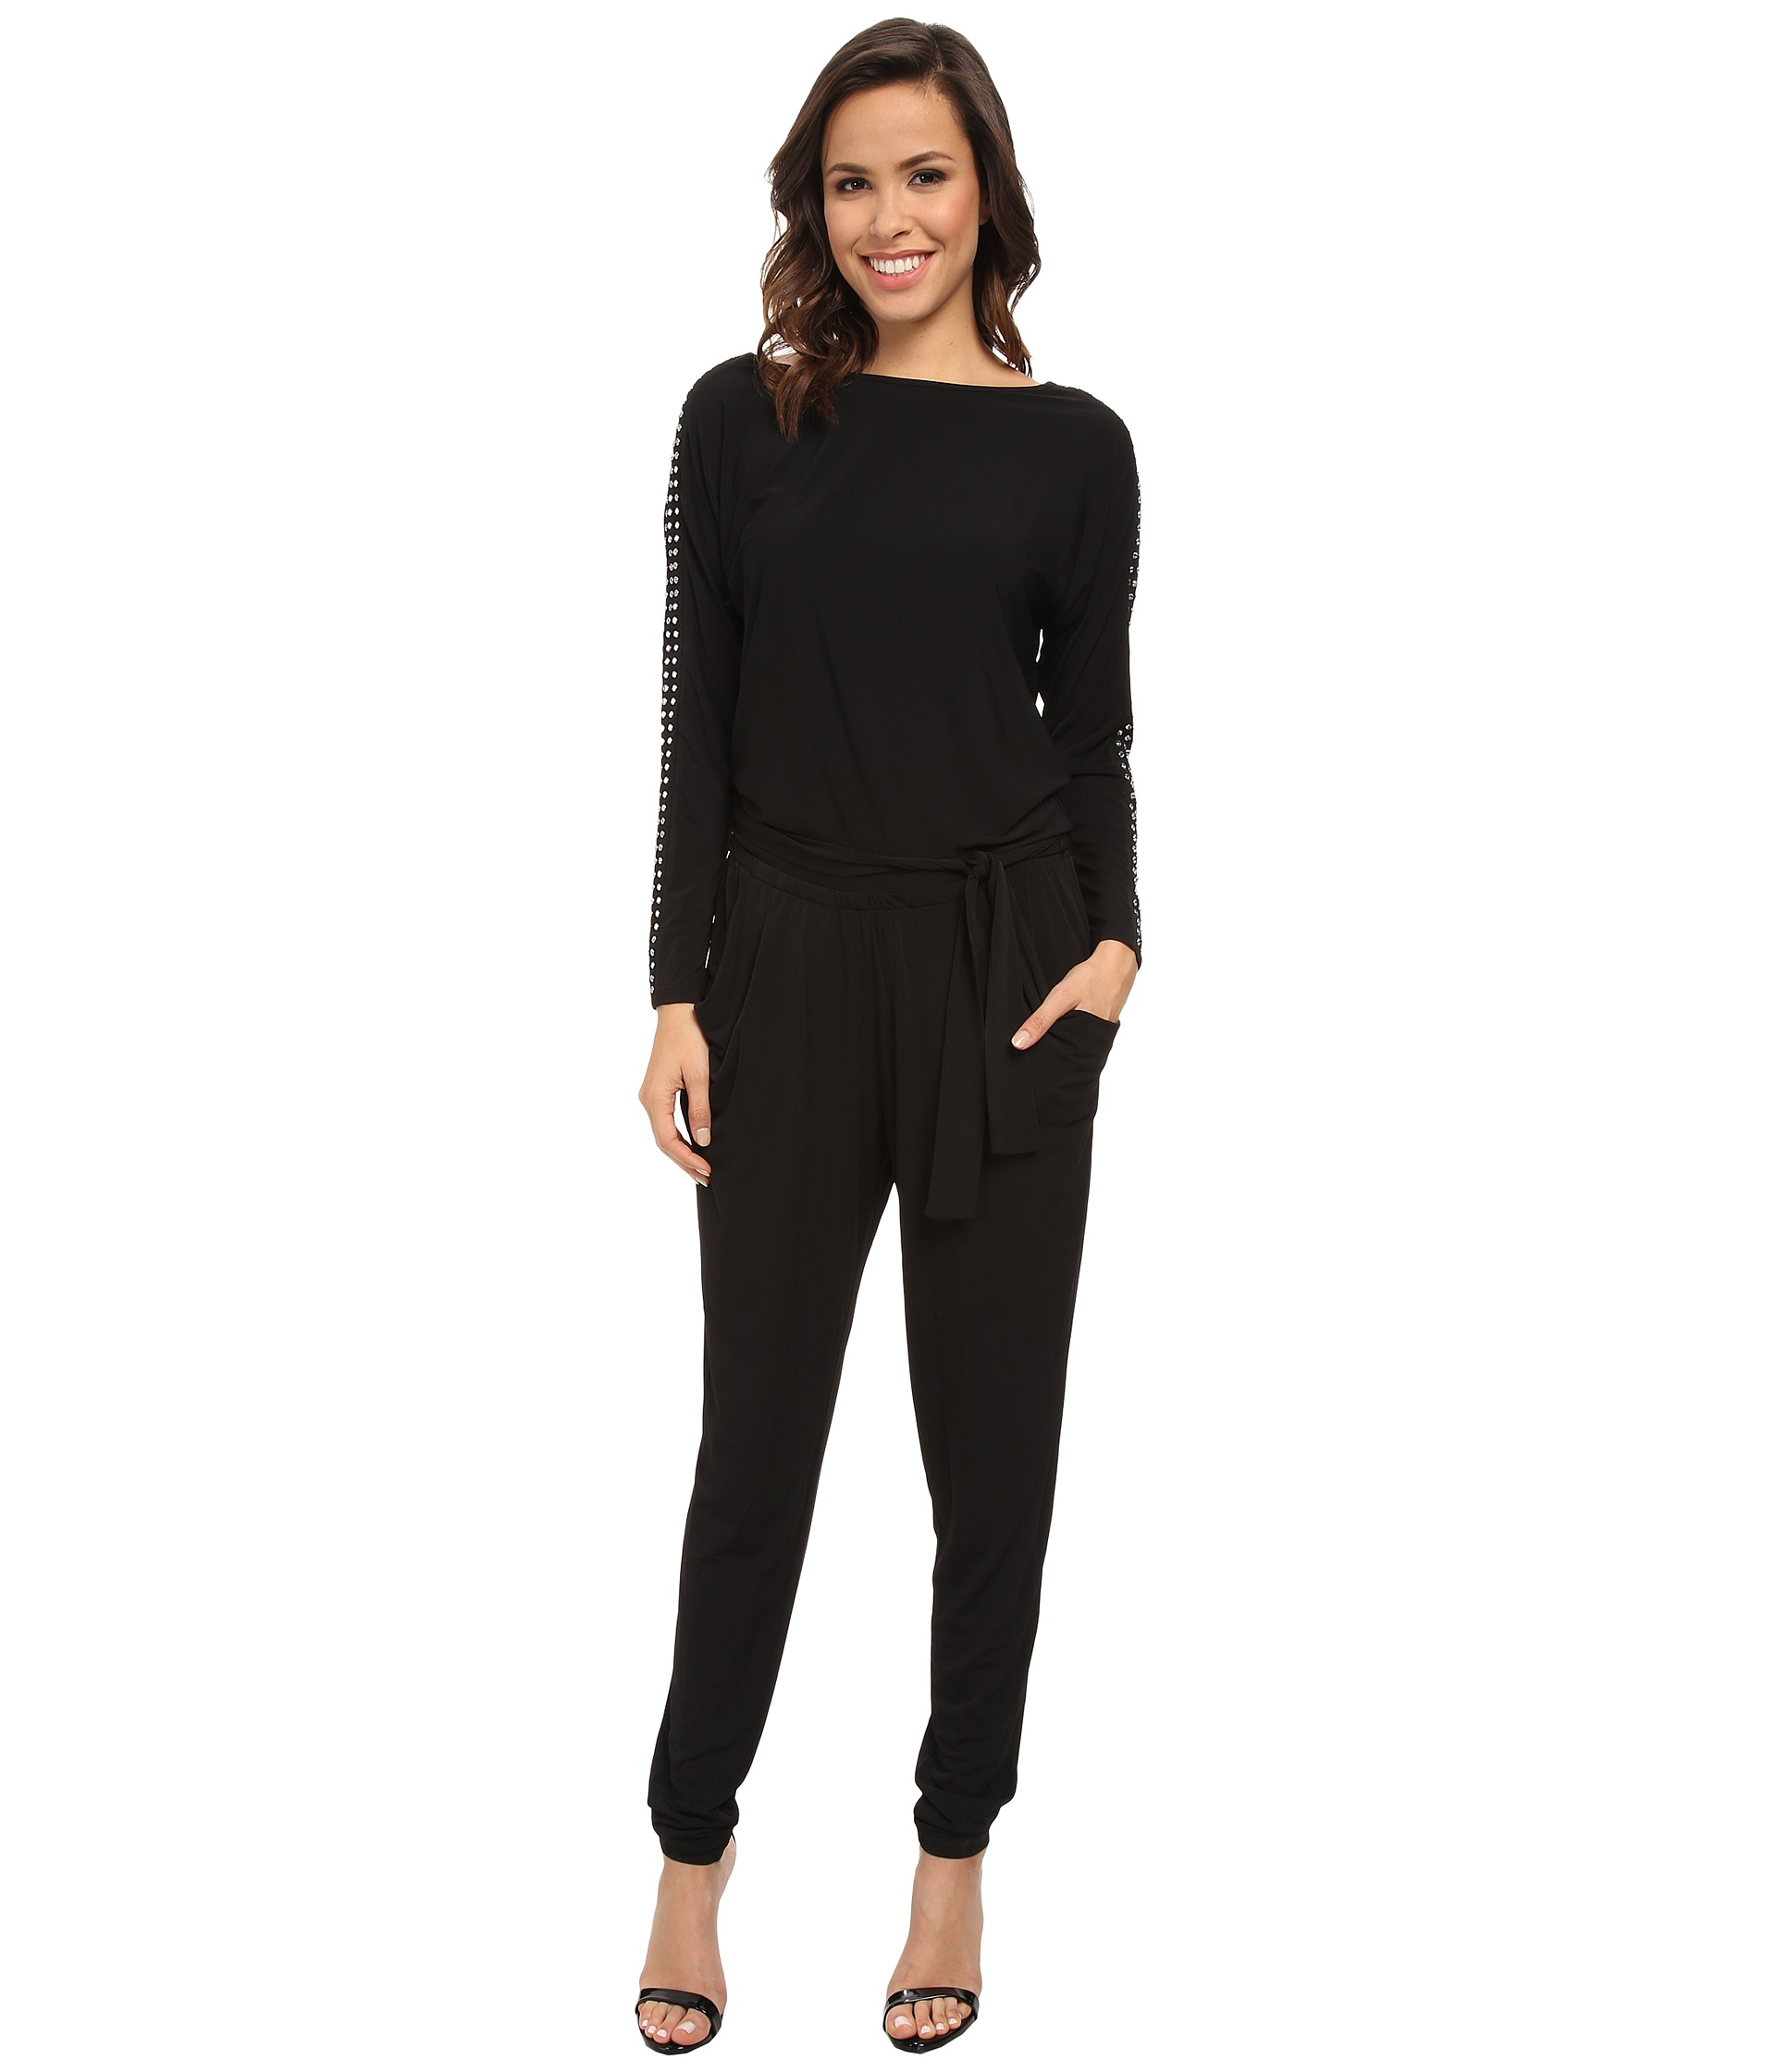 michael michael kors long sleeve studded boatneck jumpsuit shipped free at zappos. Black Bedroom Furniture Sets. Home Design Ideas